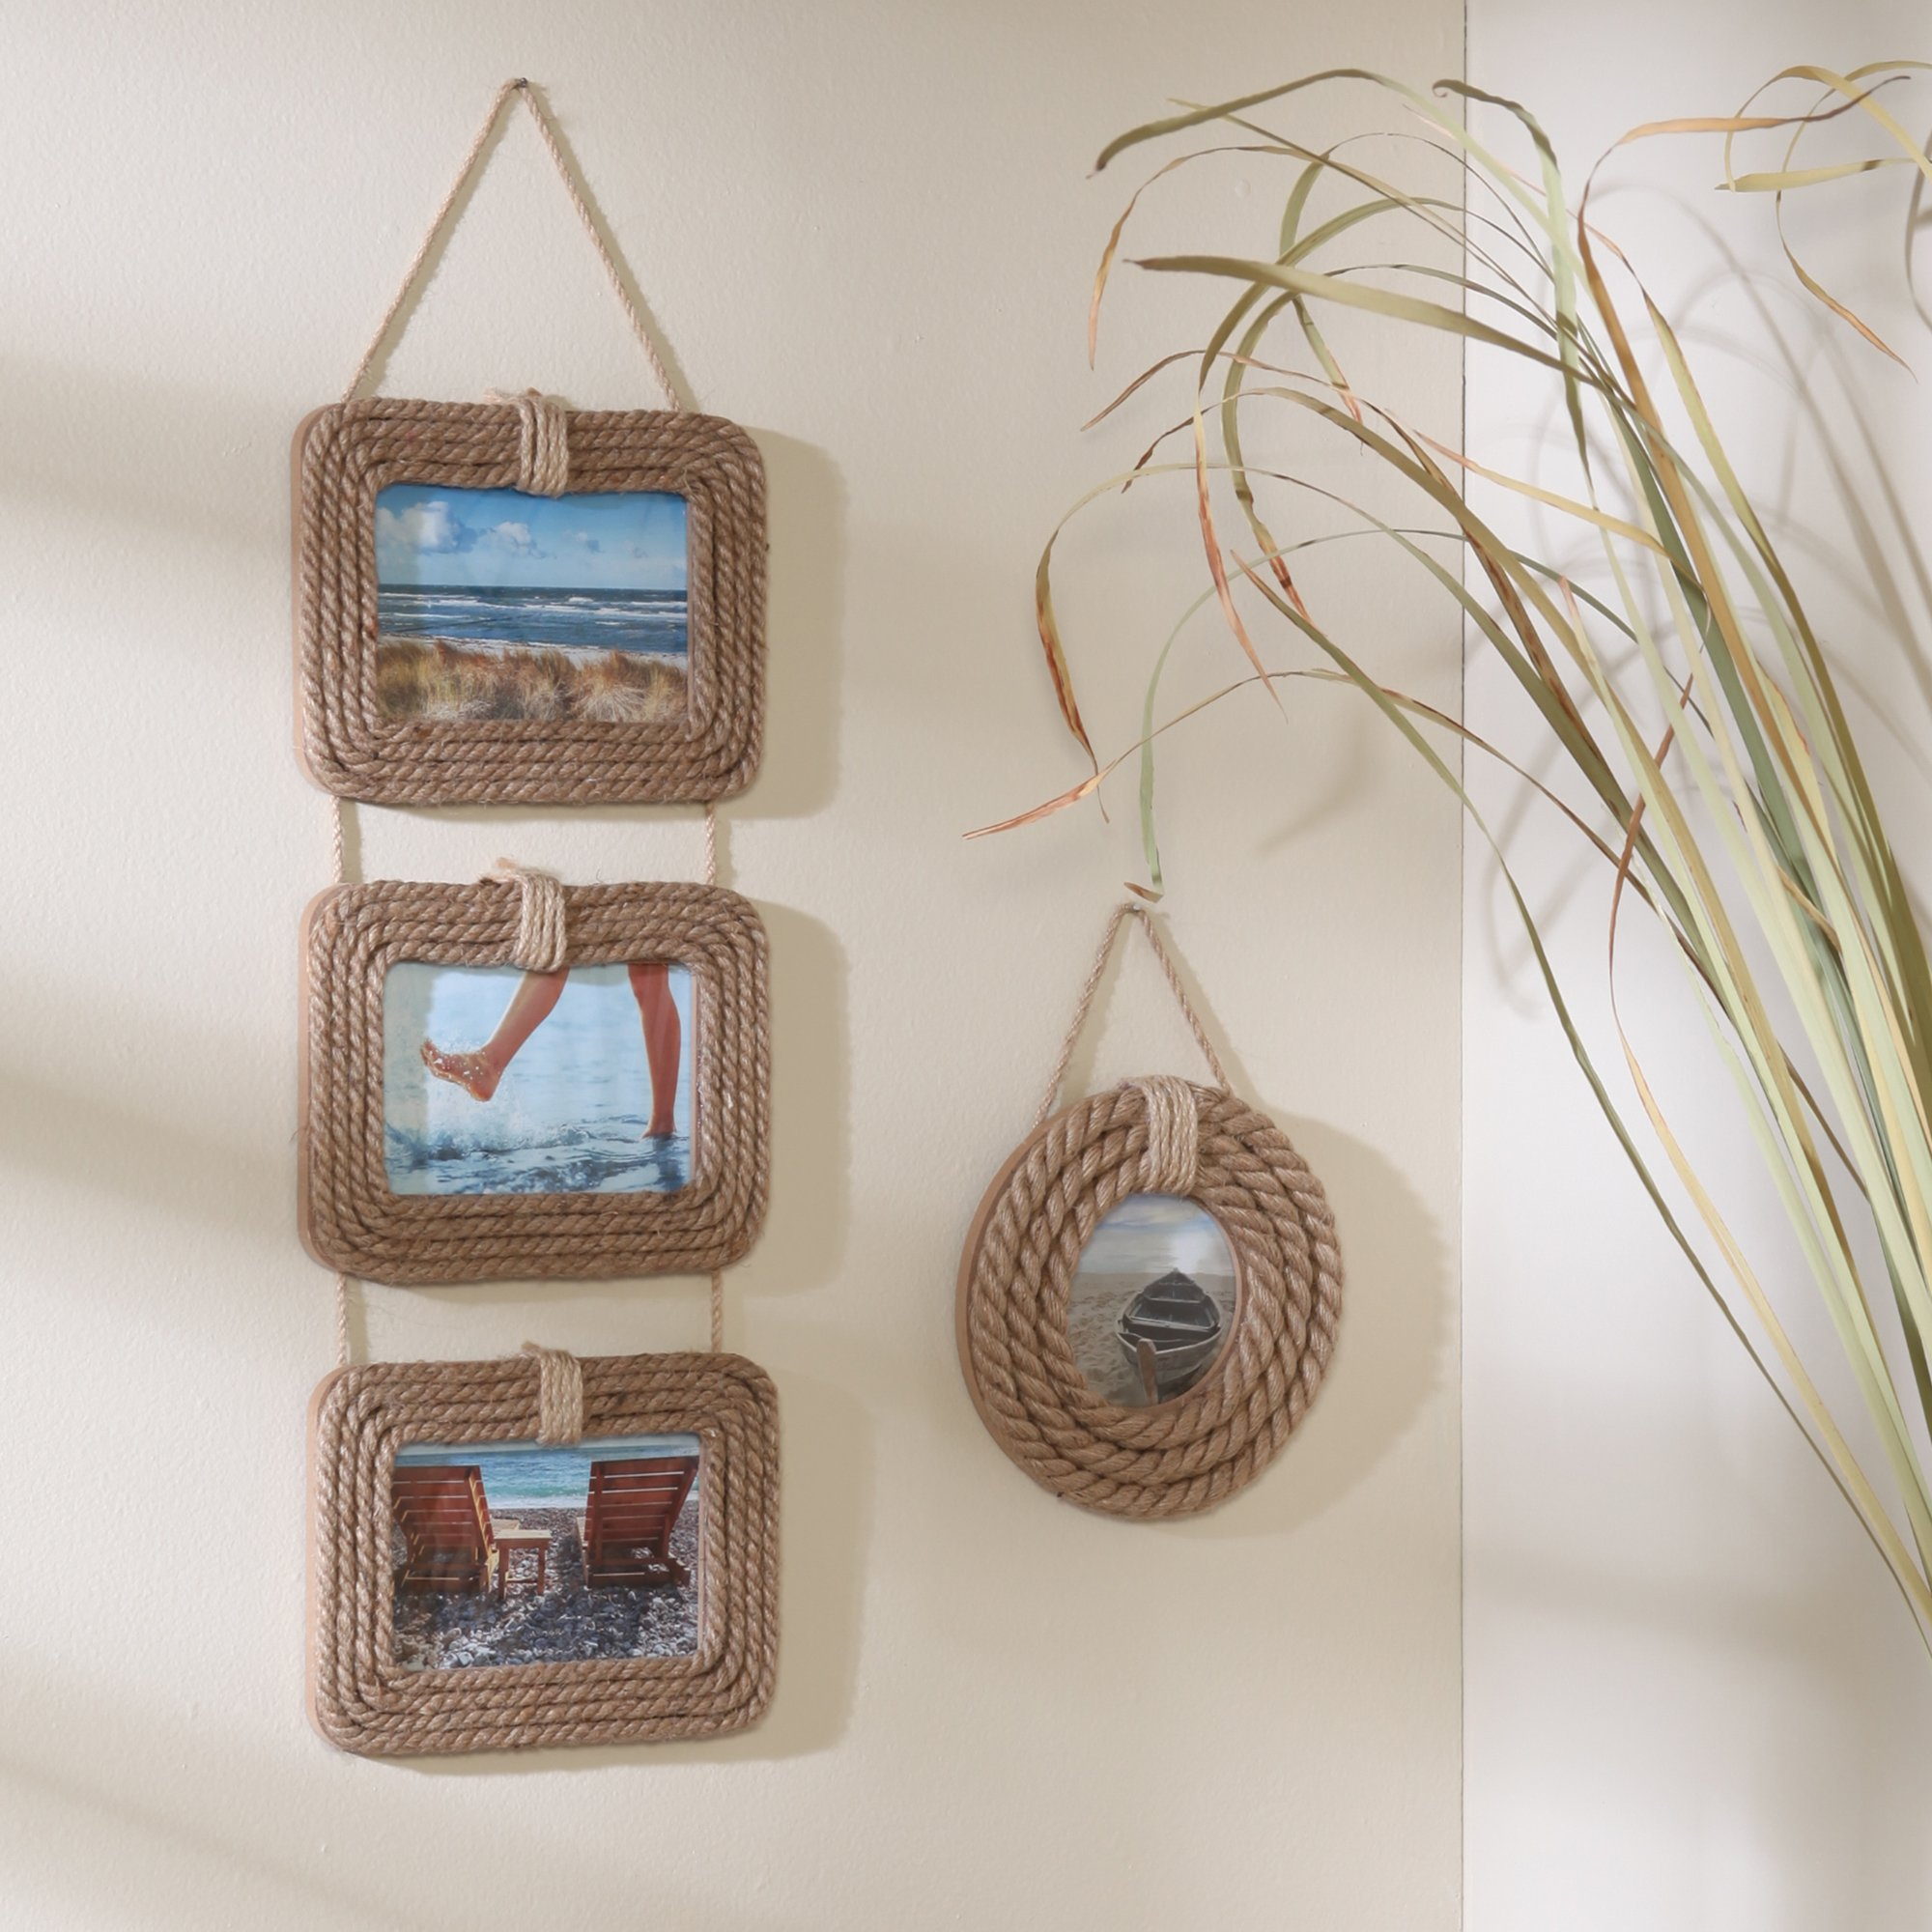 Hosley Jute Rope Three 4'' x 6'' Photo Frames - 20'' High. Ideal Gift for Wedding or Special Occasion and use for Party, Home/Office, Spa, Bathroom Setting. P2 by Hosley (Image #2)